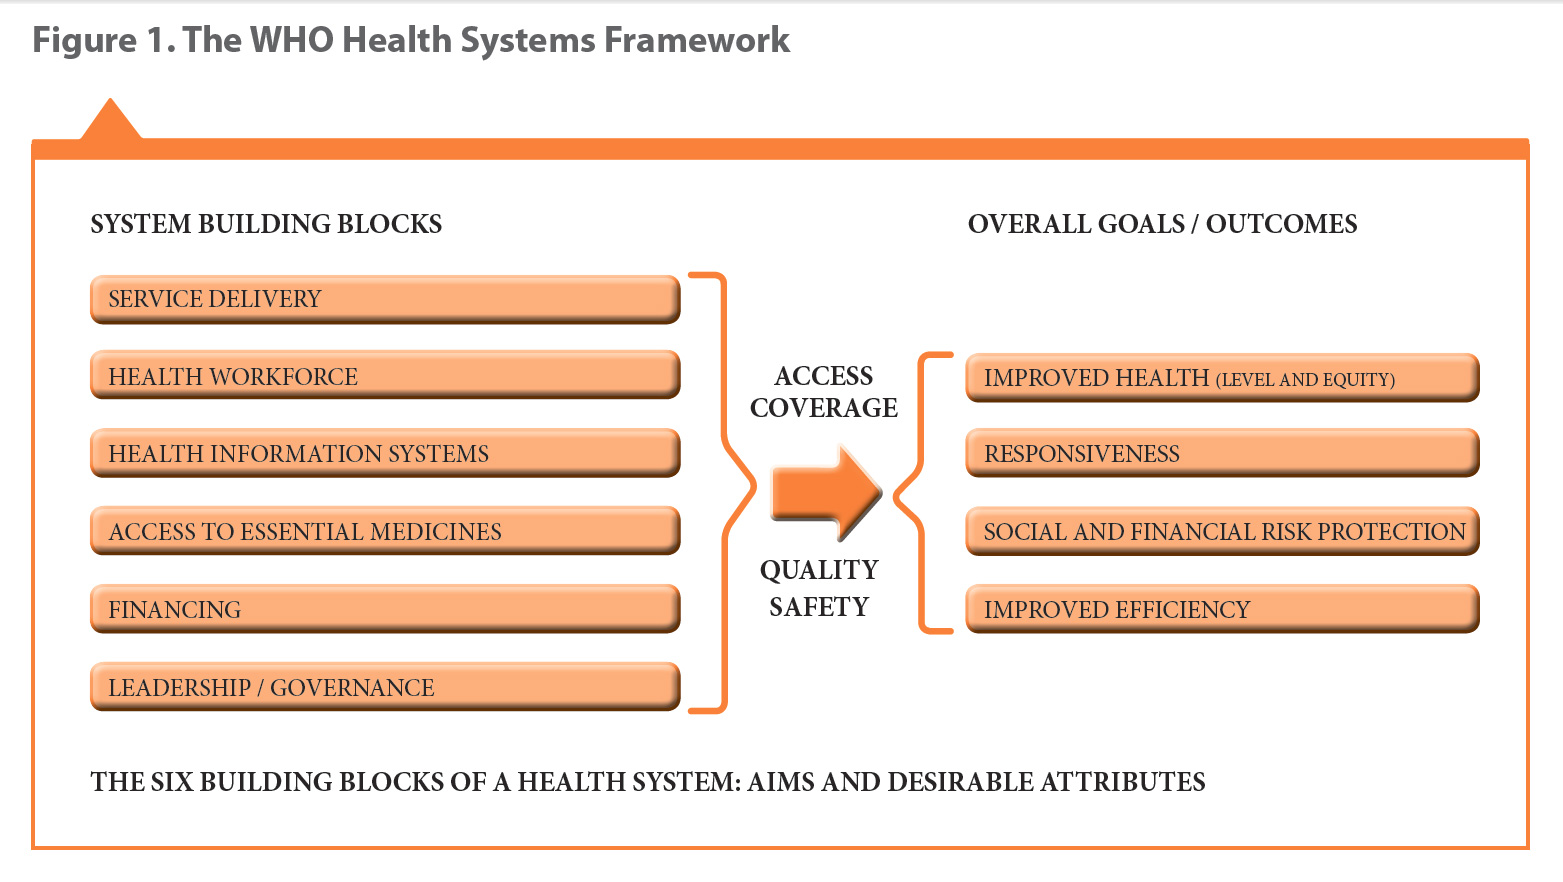 a handbook of indicators and their measurement strategies, World Health Organisation, 2010